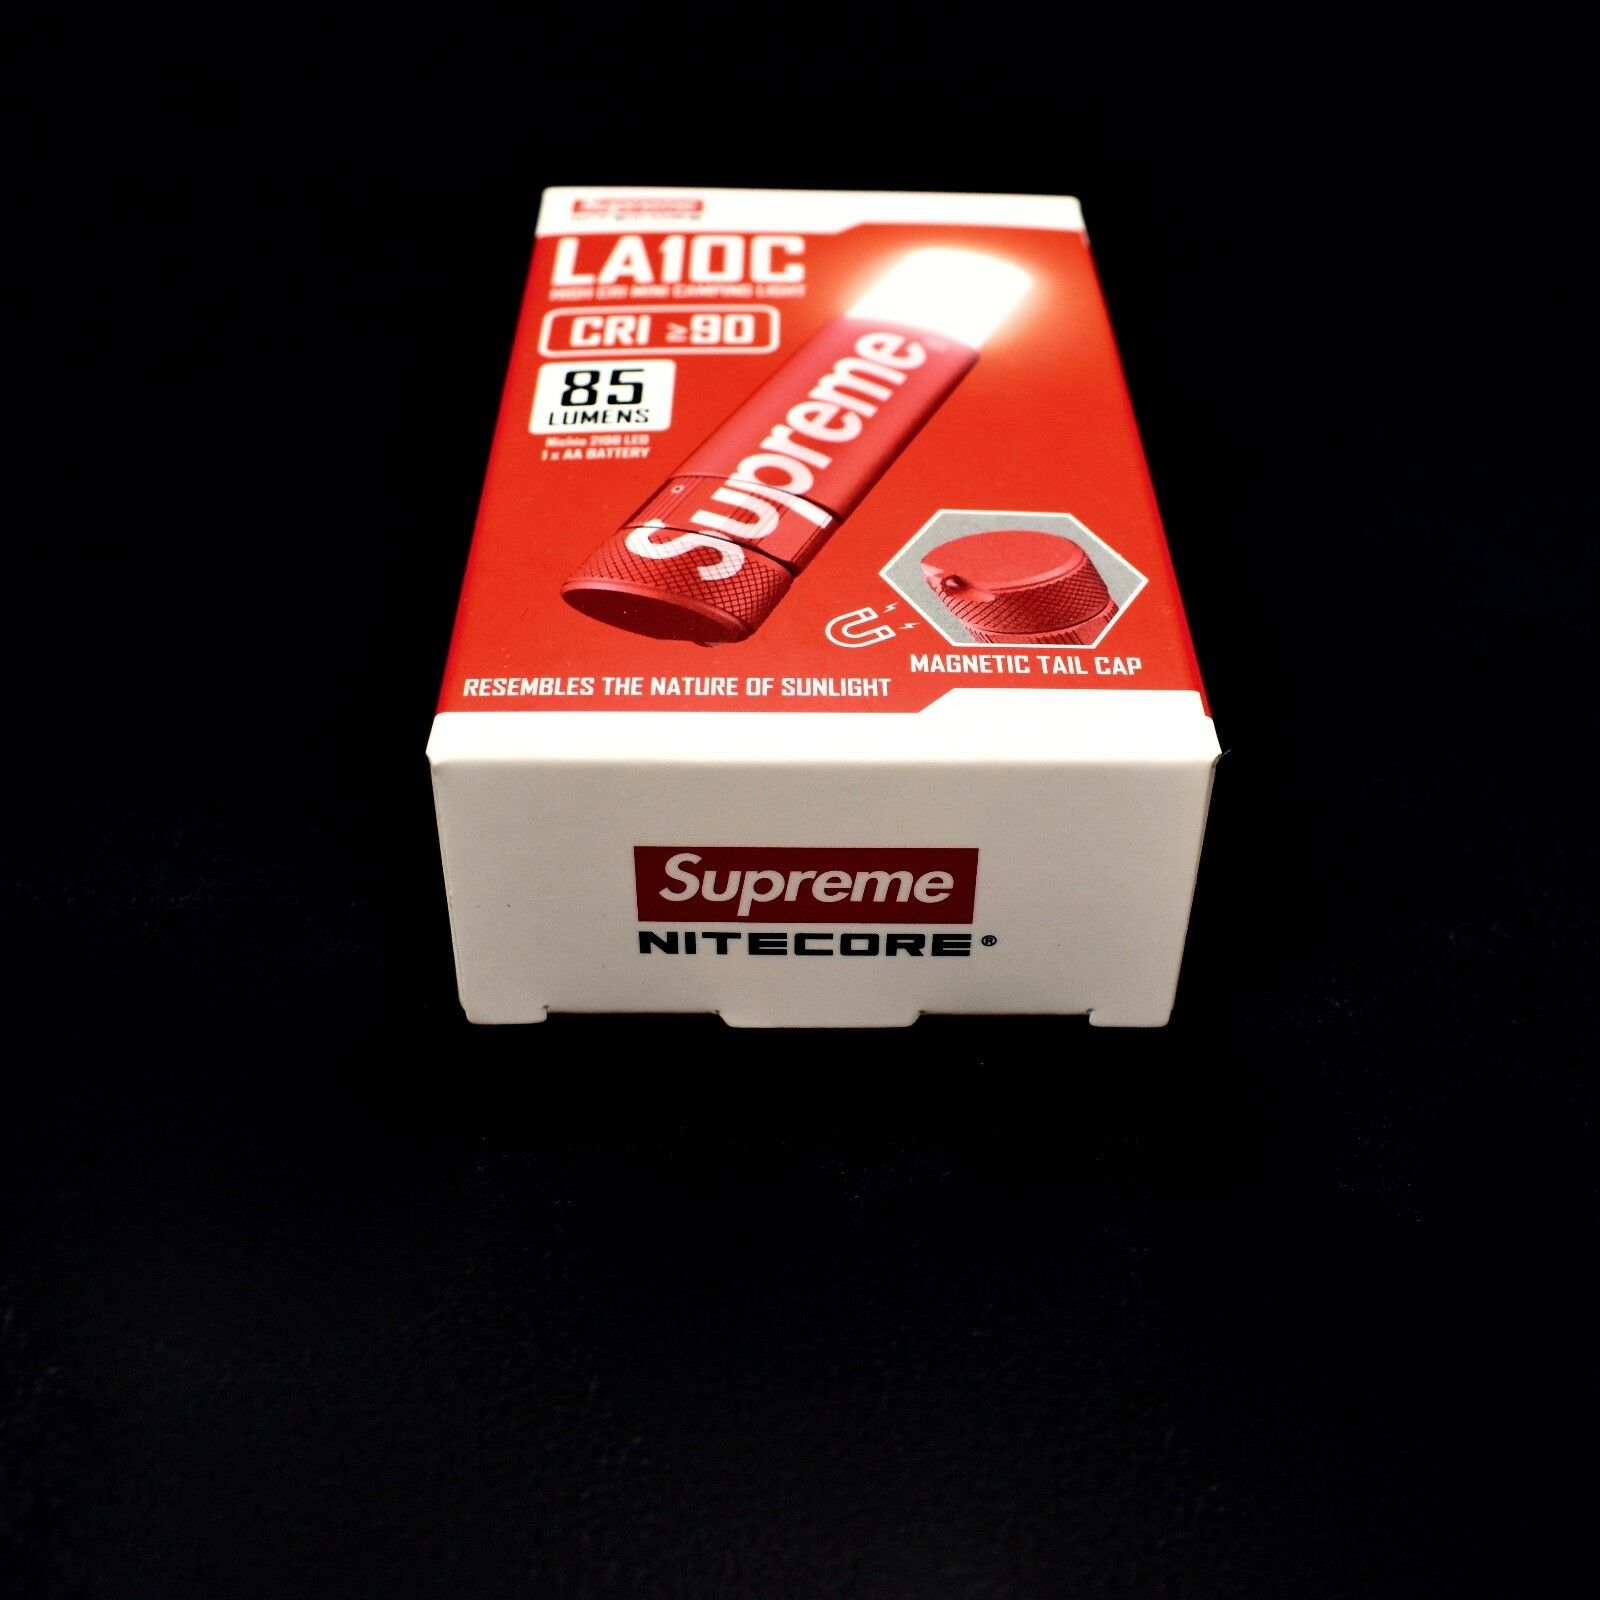 NWT Supreme NY Nitecore rot Box Logo Mini Camping Camping Camping Flashlight Lamp FW17 AUTHENTIC 50ce87